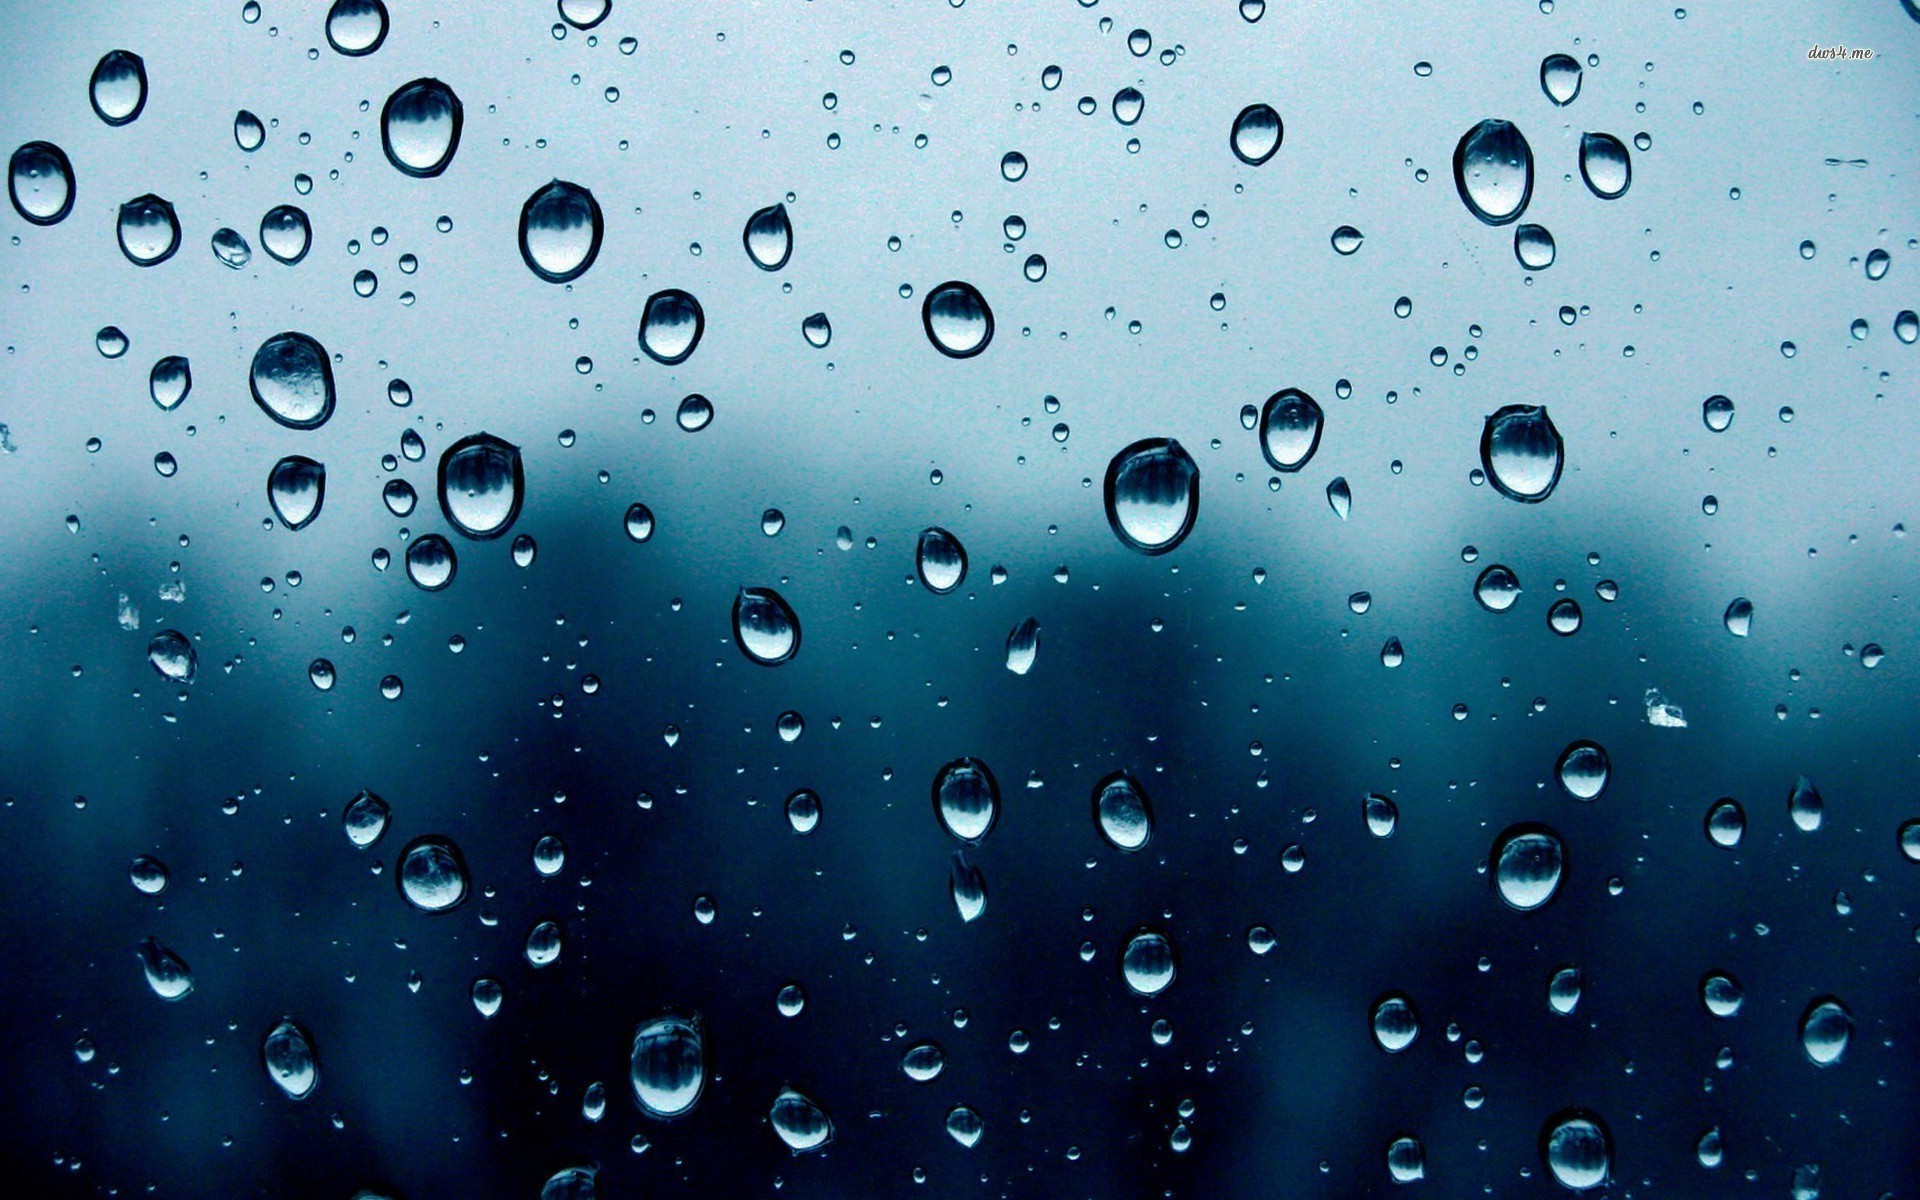 Raindrop clipart wallpaper. Background raindrops photography